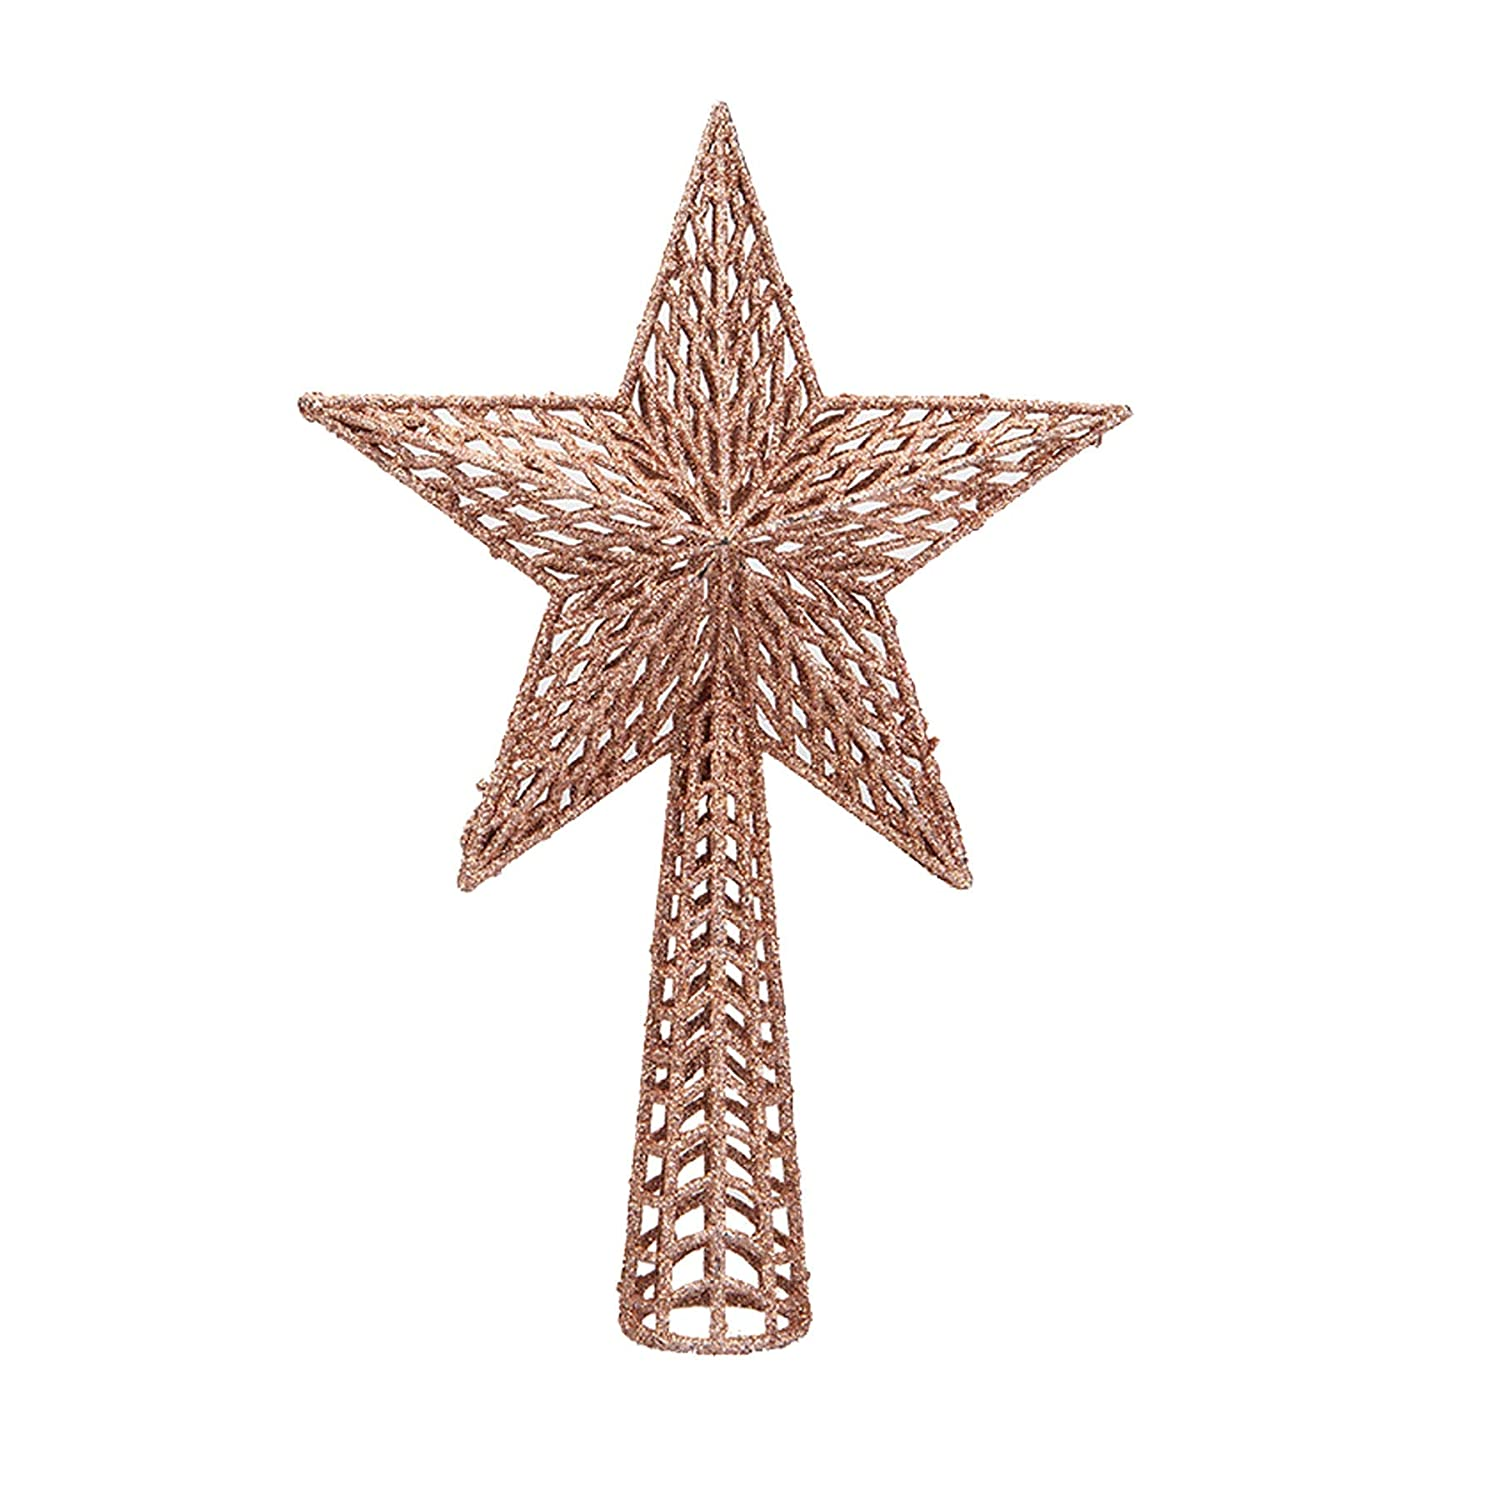 25cm Tree Top Star Rose Gold 8500 Widdle Wonderland Glitter Collection Christmas Tree Decoration